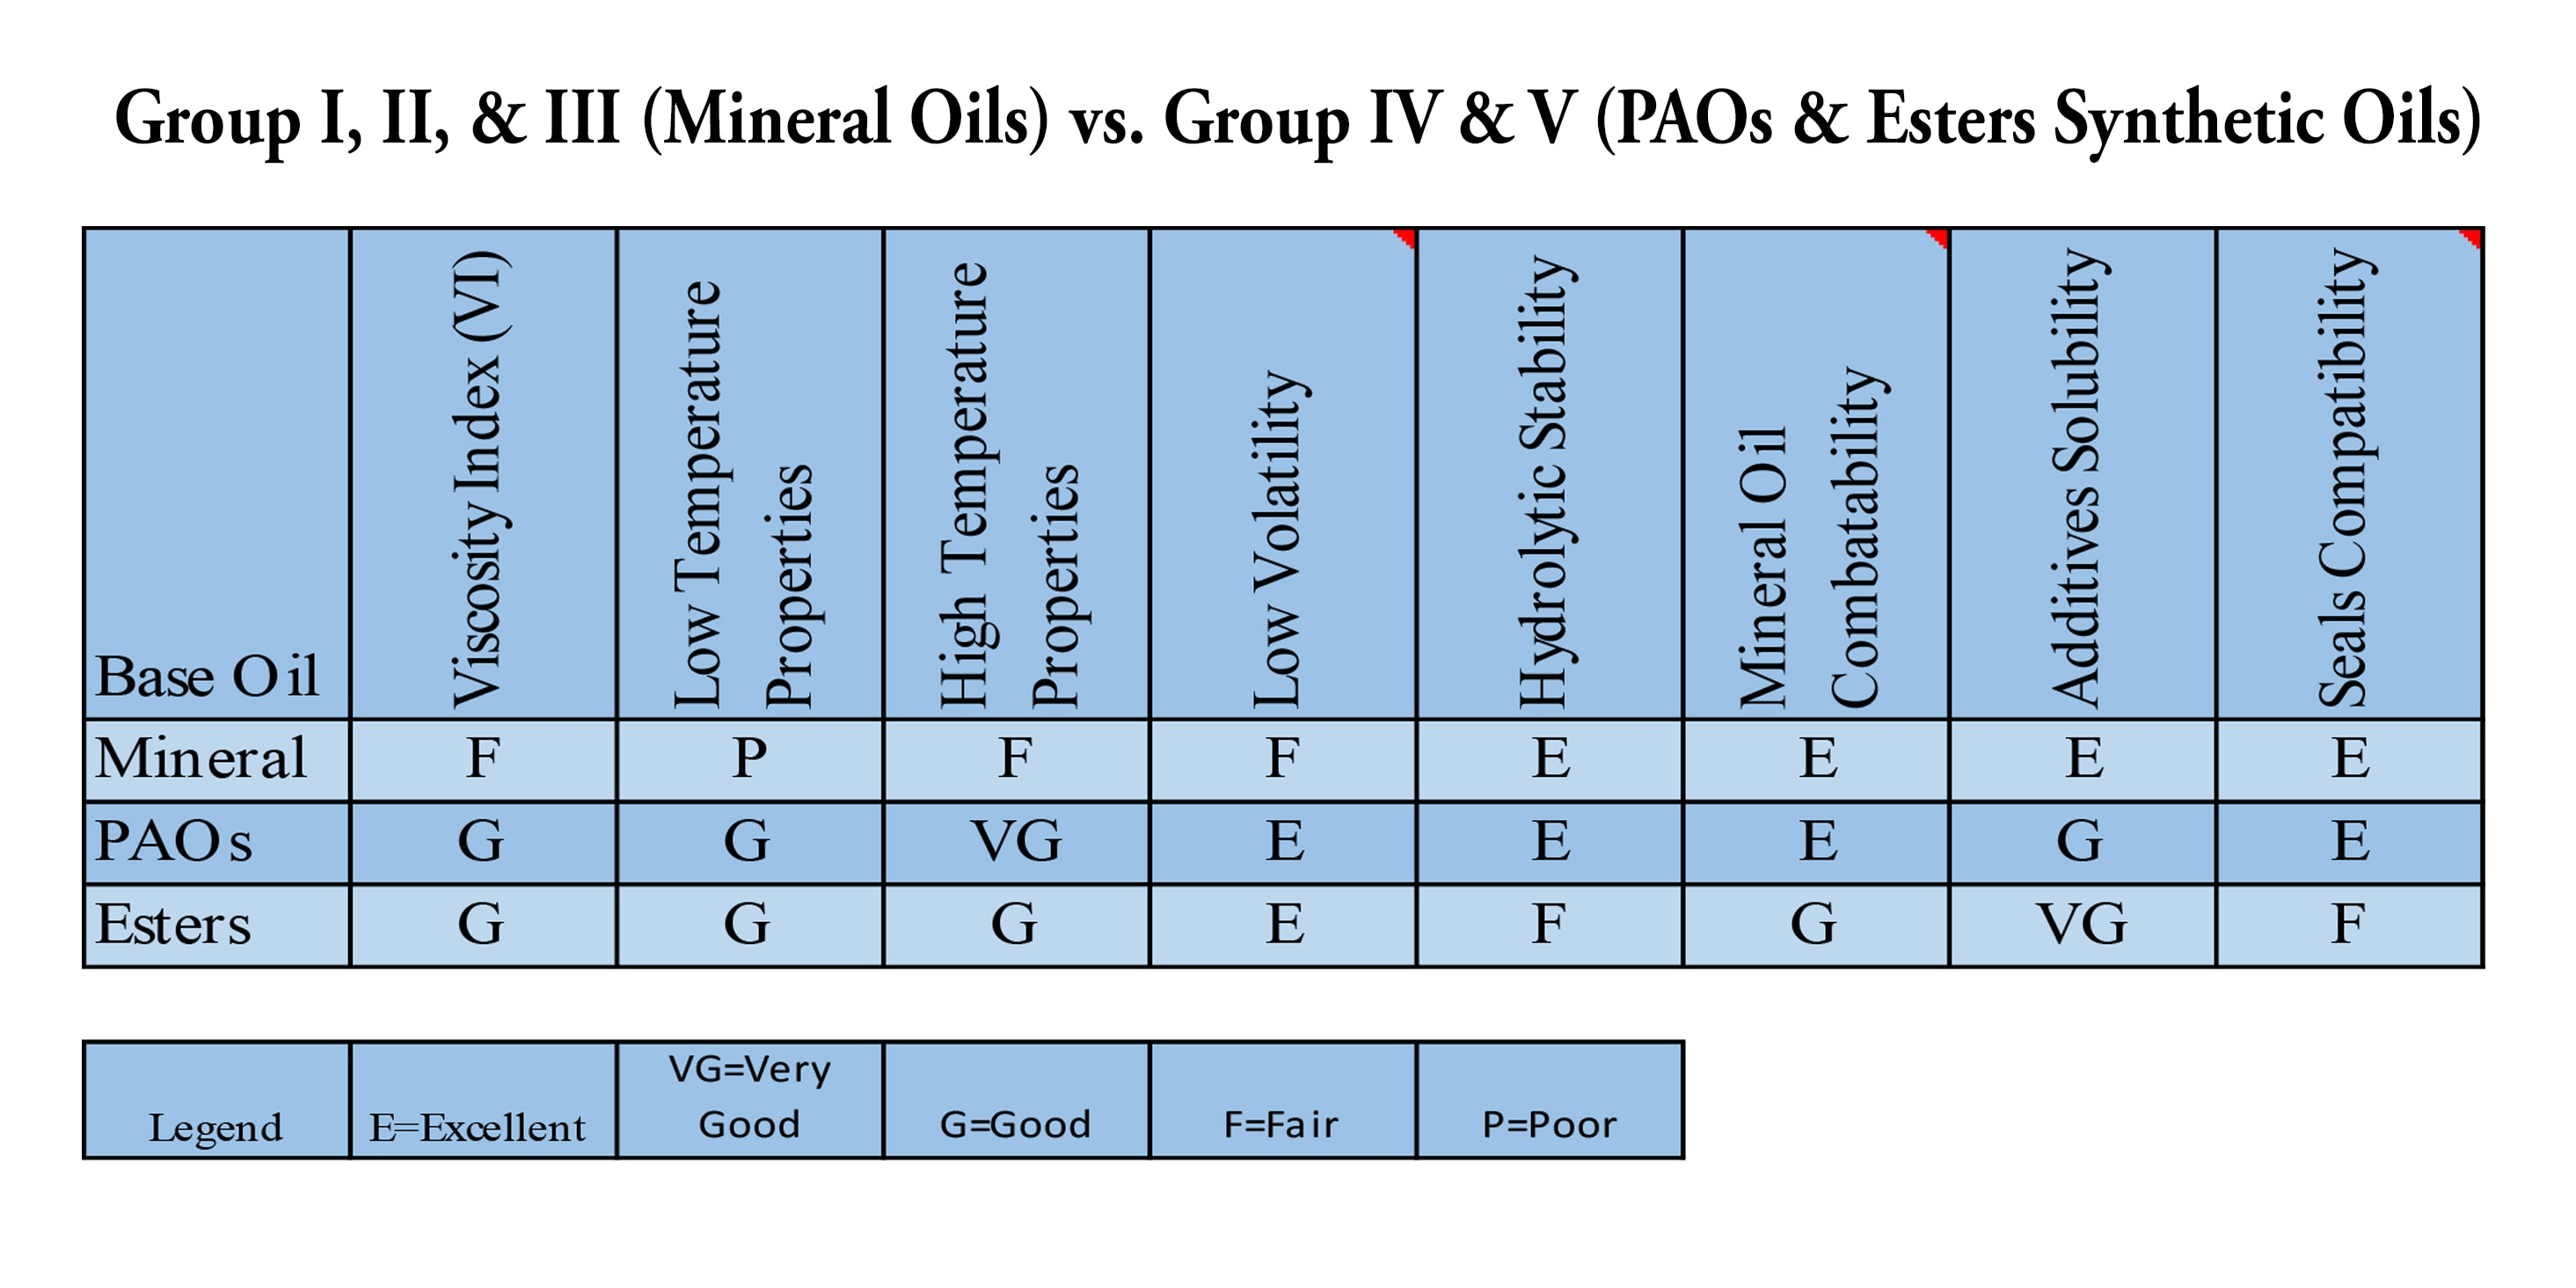 This chart provides information about how mineral oil and synthetic oils compare. In most cases, synthetic oils outperform mineral oils. If the synthetic oils are not the best in a category, they are tied with the mineral oils, but the blending of certain Esters to PAOs extends the time between service intervals of the synthetic oil, thus outperforming all mineral oils.